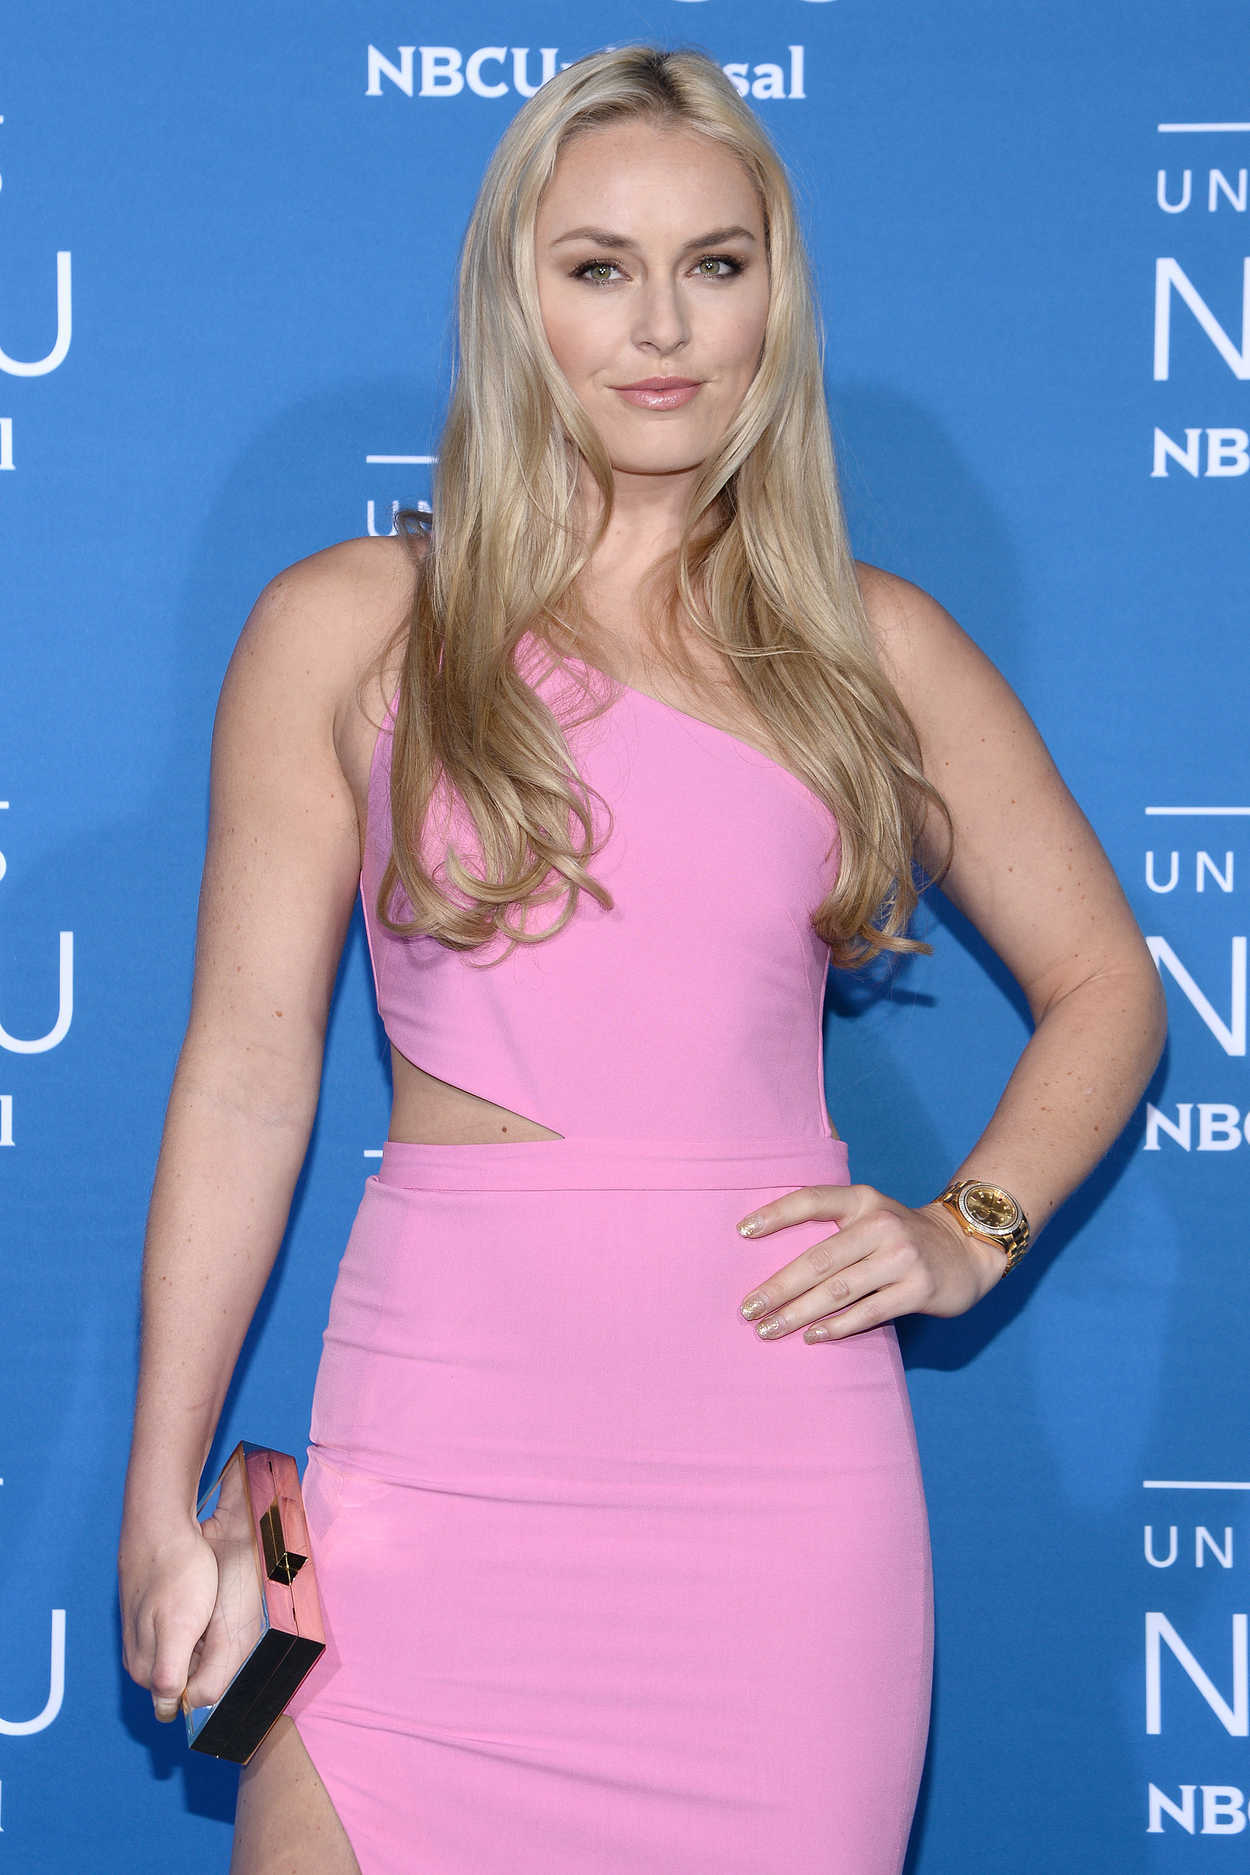 lindsey vonn at the nbcuniversal upfront in new york city